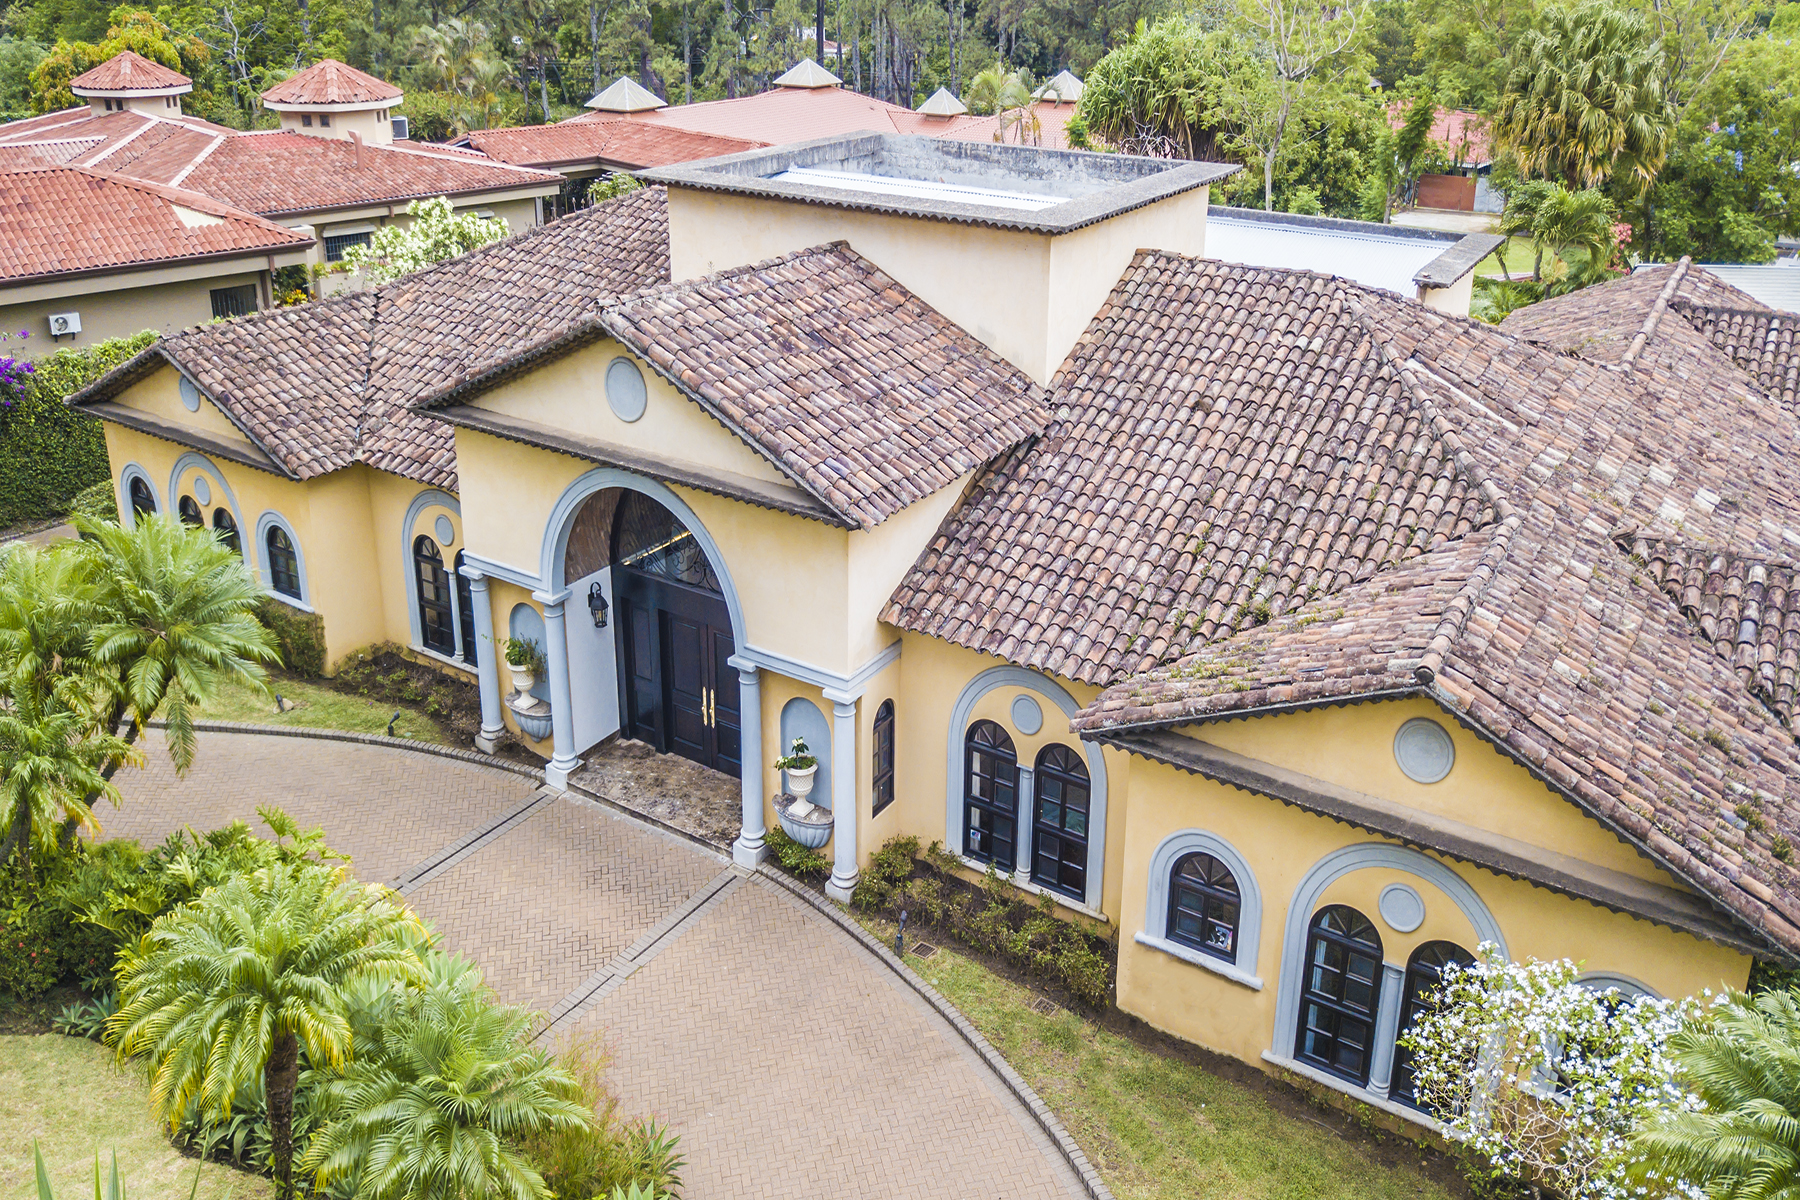 Single Family Homes for Sale at Luxury Residence in Santa Ana Santa Ana, San Jose Costa Rica